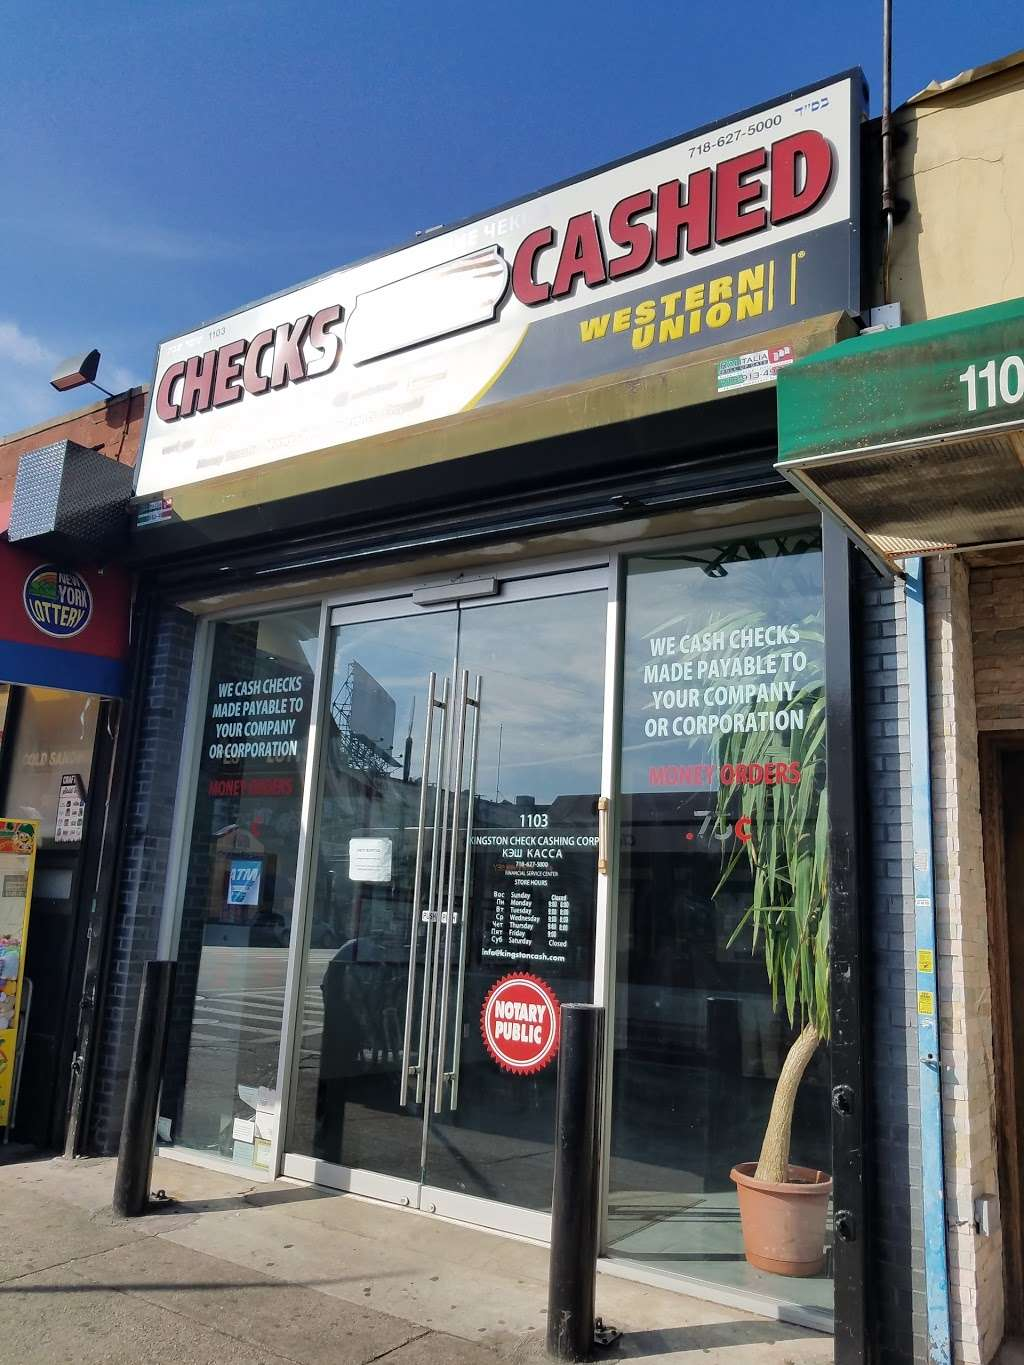 Check Cashing & Foreign Currency Exchange - atm  | Photo 2 of 5 | Address: 1103 Quentin Rd, Brooklyn, NY 11229, USA | Phone: (718) 627-5000